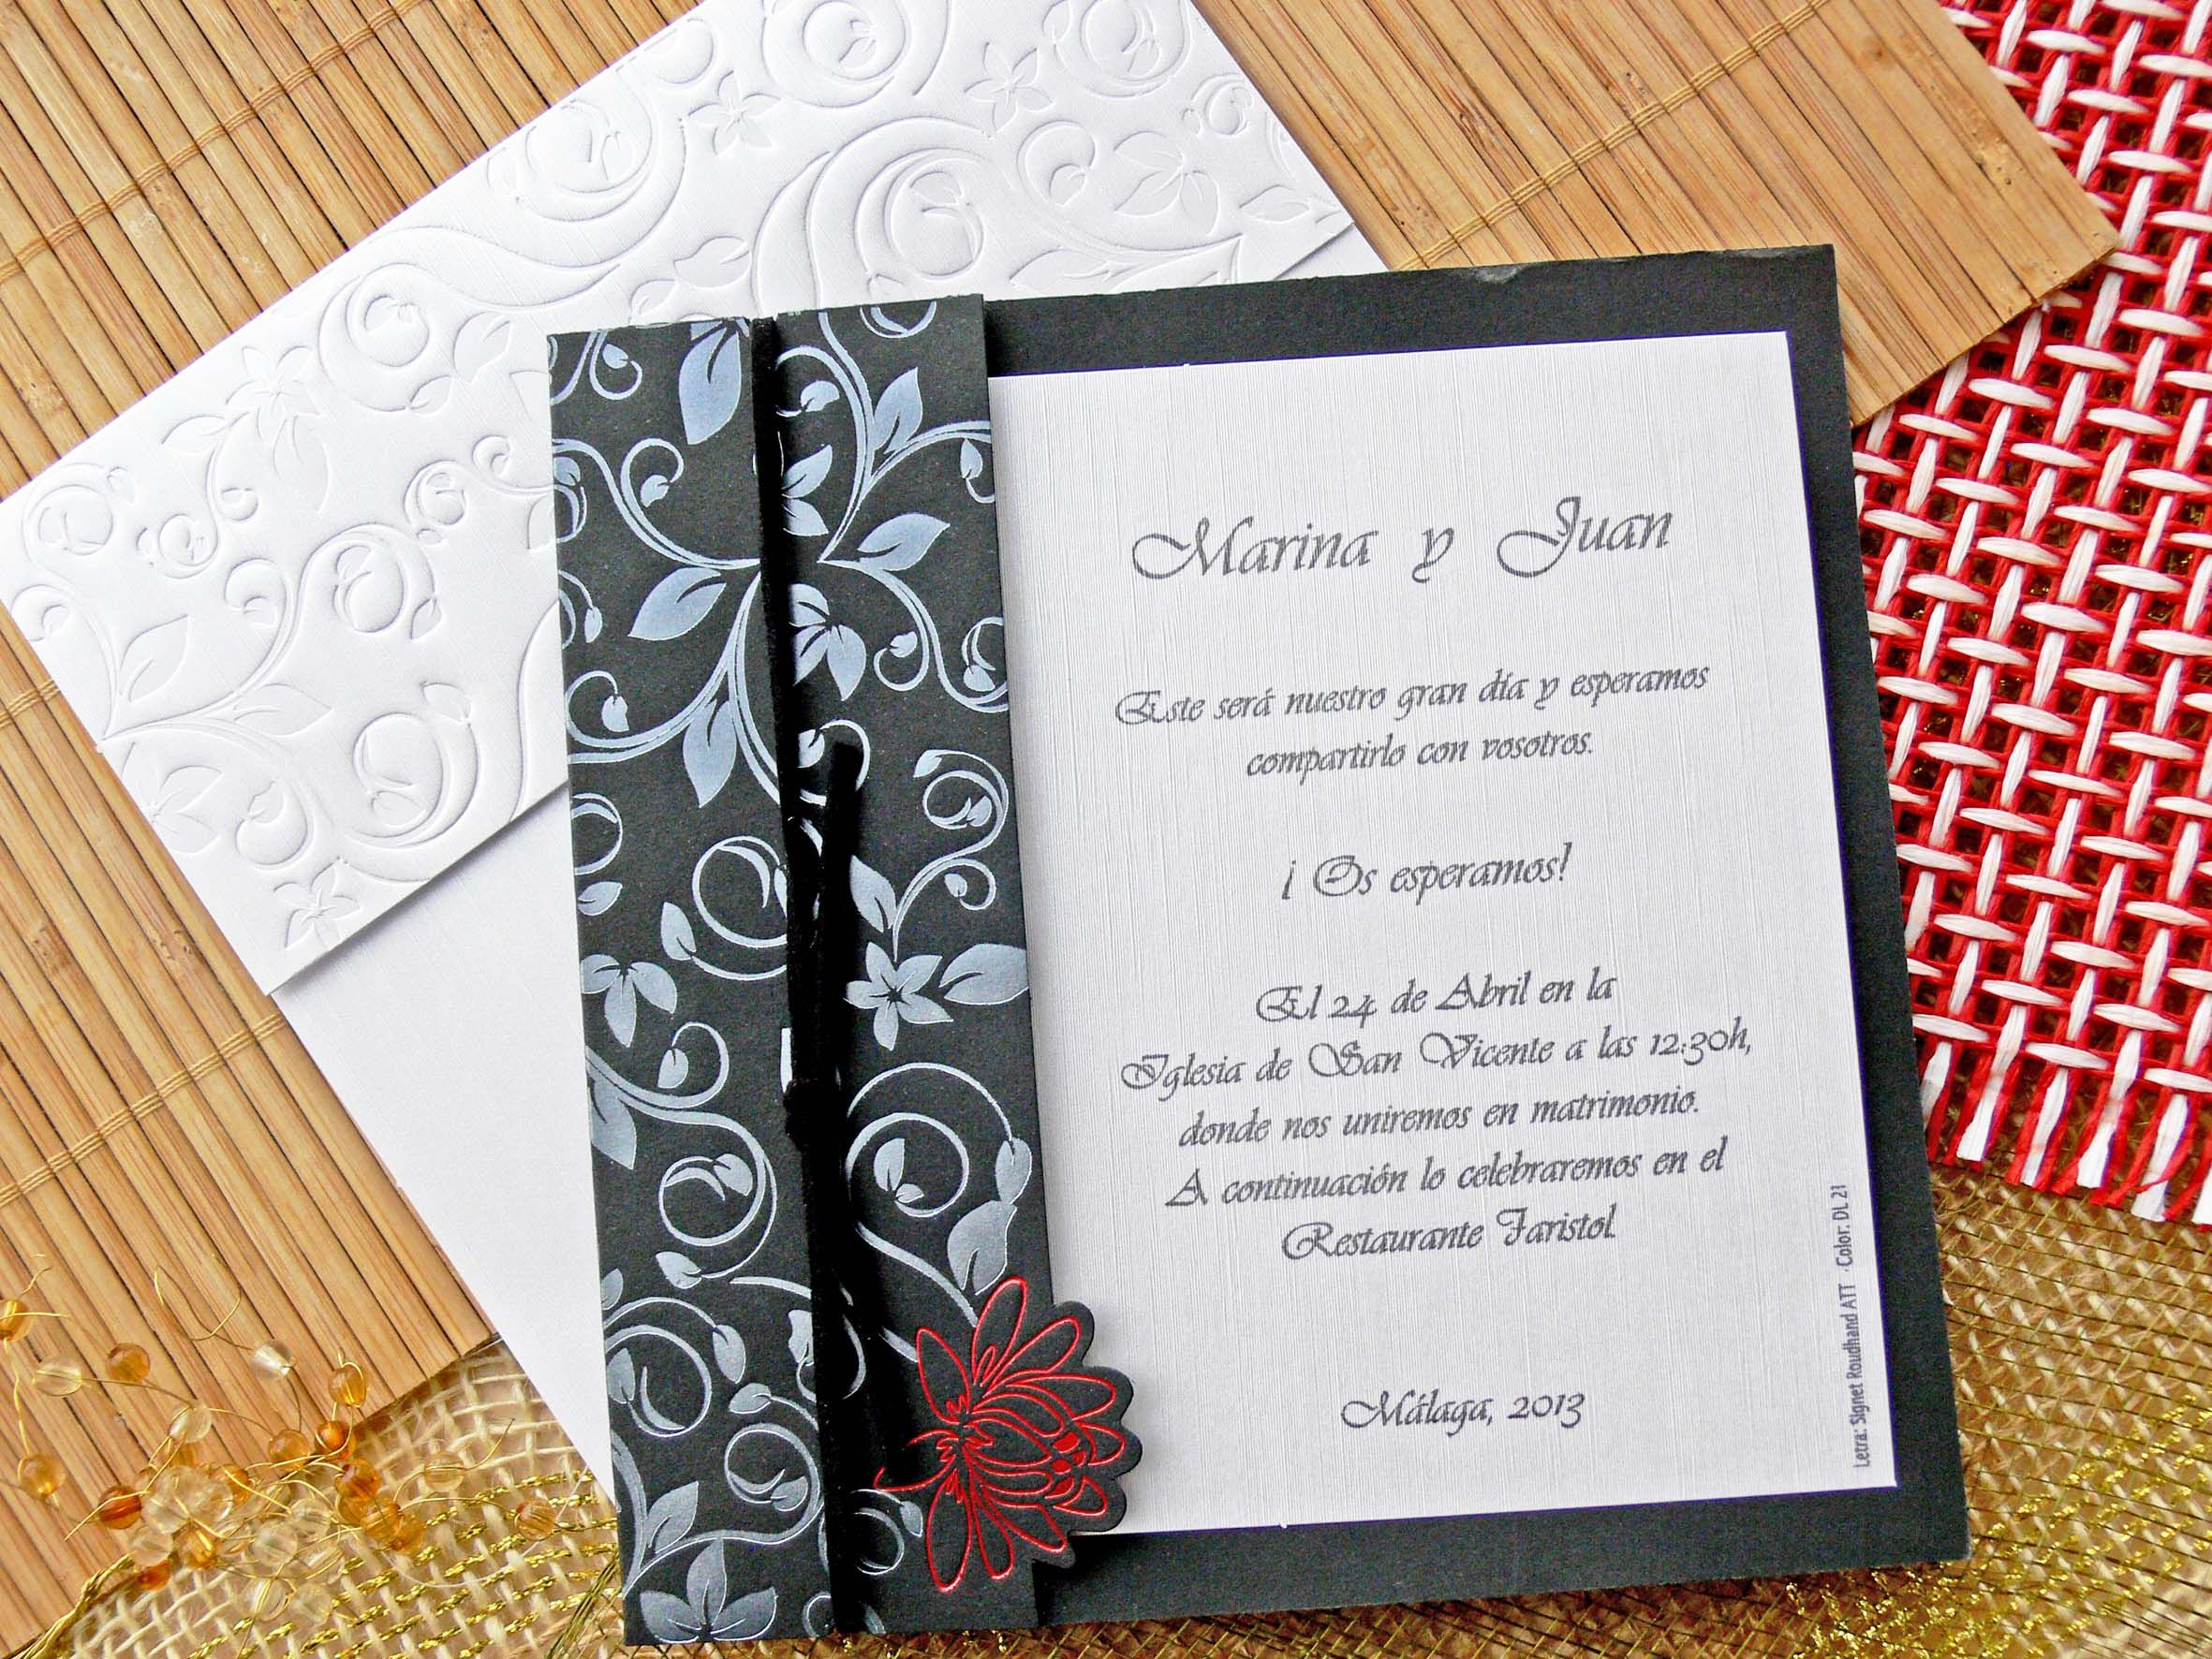 invitacion-de-boda-agata-1-2190.jpg (2362×1772) | Wedding ...